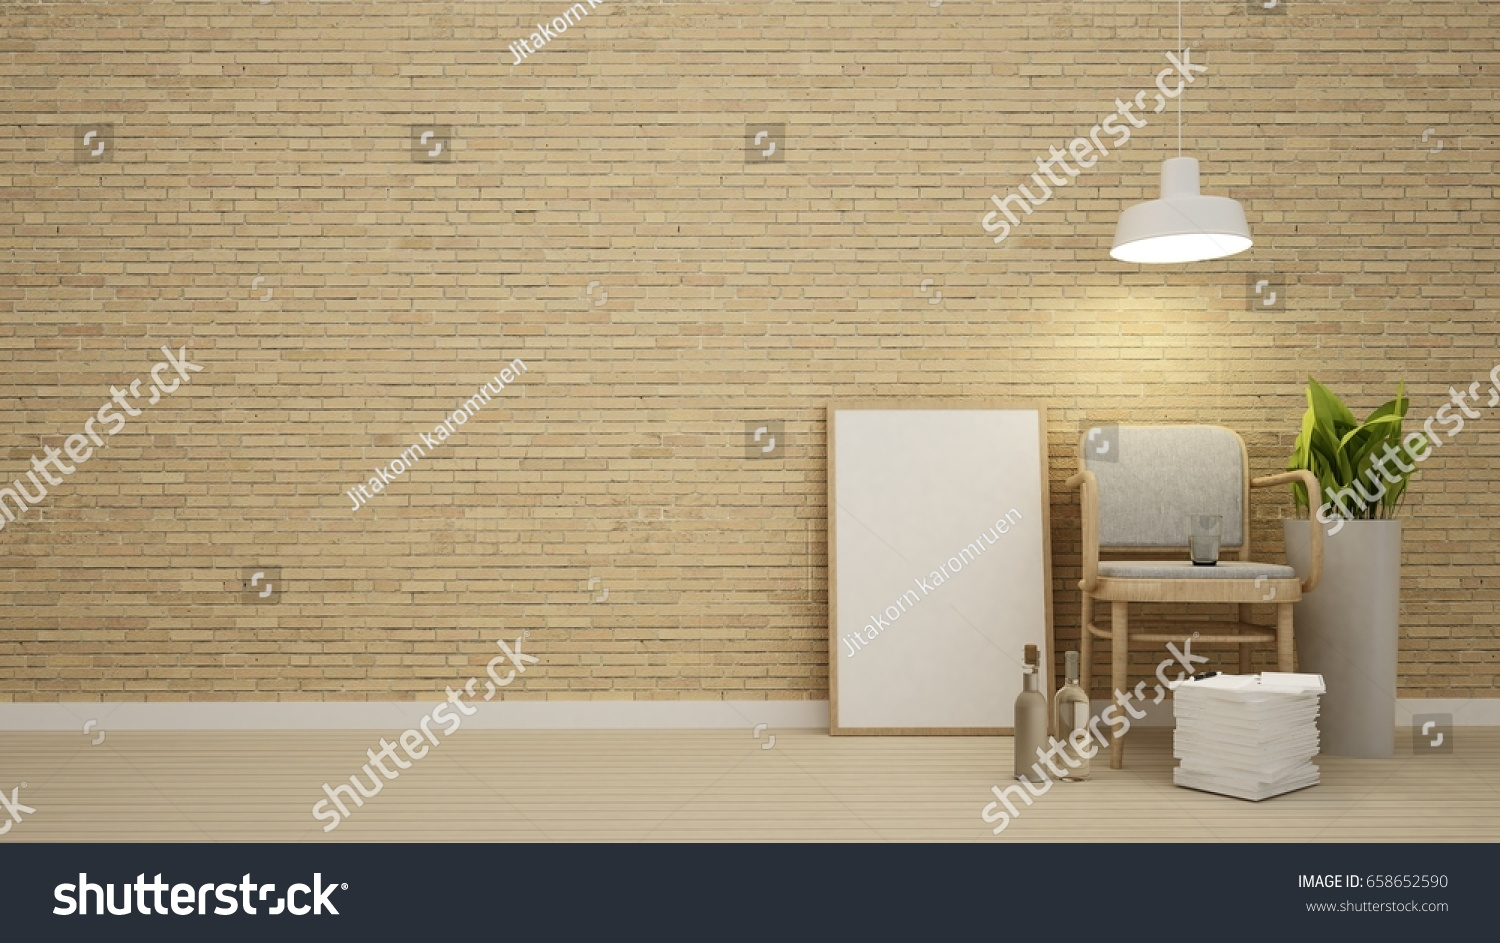 Cool Brick Wall Decoration Photos - The Wall Art Decorations ...